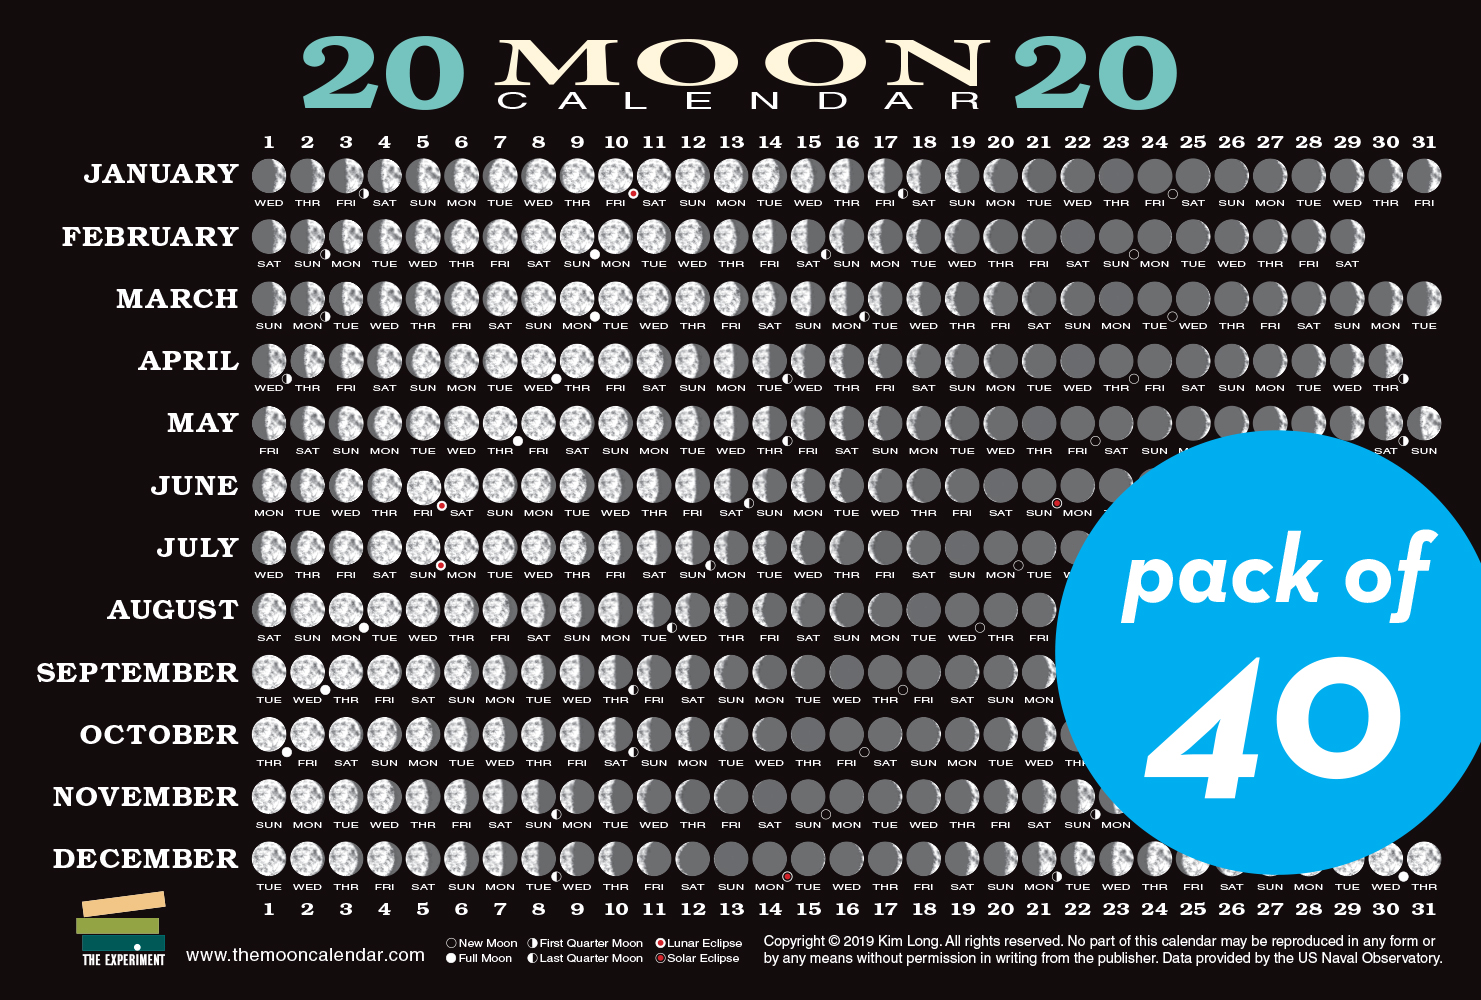 Moon Calendar For 2020 2020 Moon Calendar Card (40 pack)   Workman Publishing